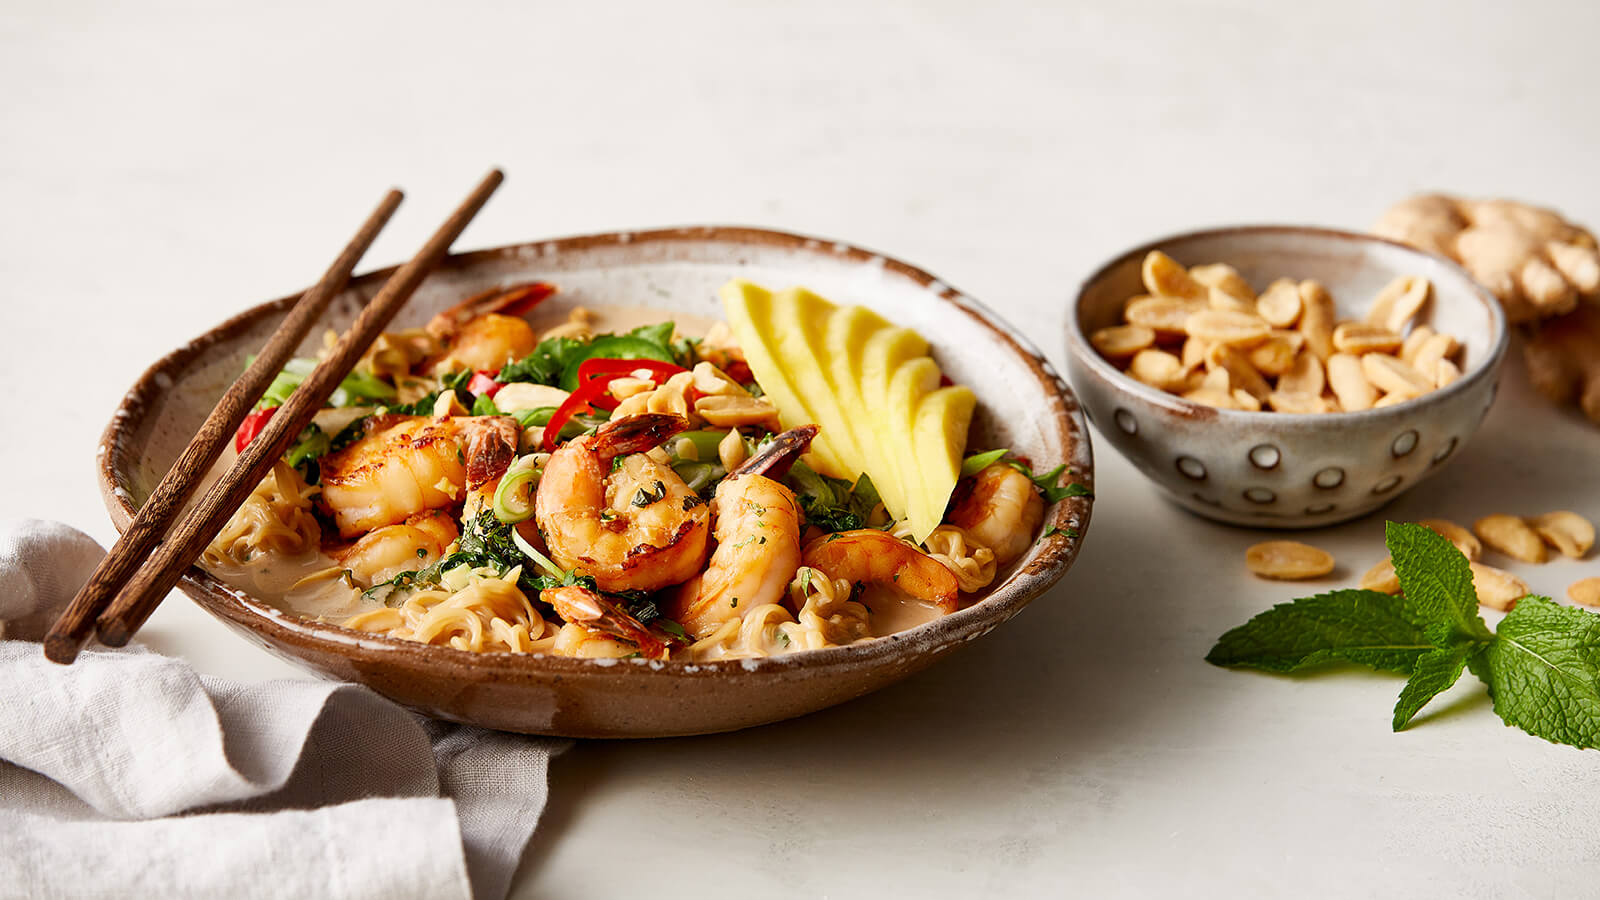 Spicy Shrimp Noodle Bowls with Mango and Herbs